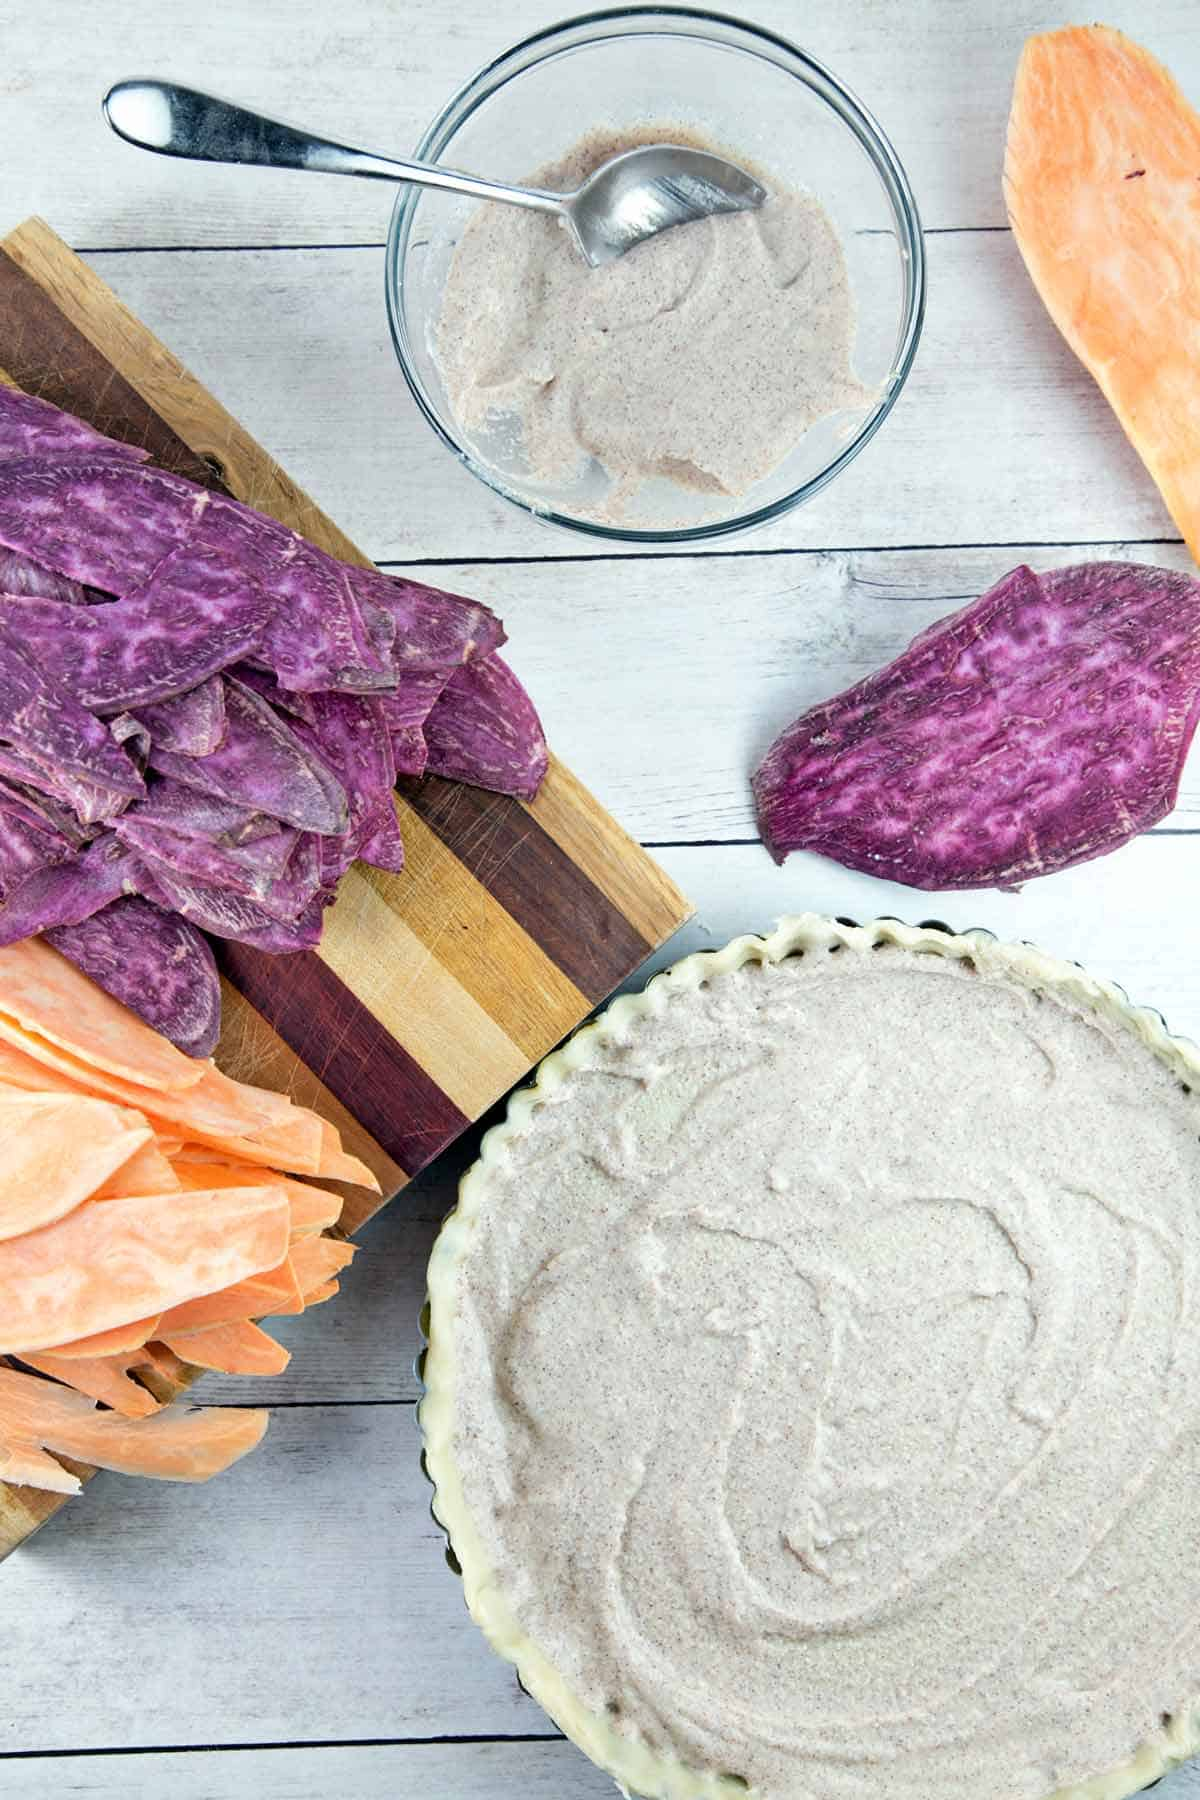 tart crust with a layer of whipped maple ricotta next to sliced orange and purple sweet potatoes